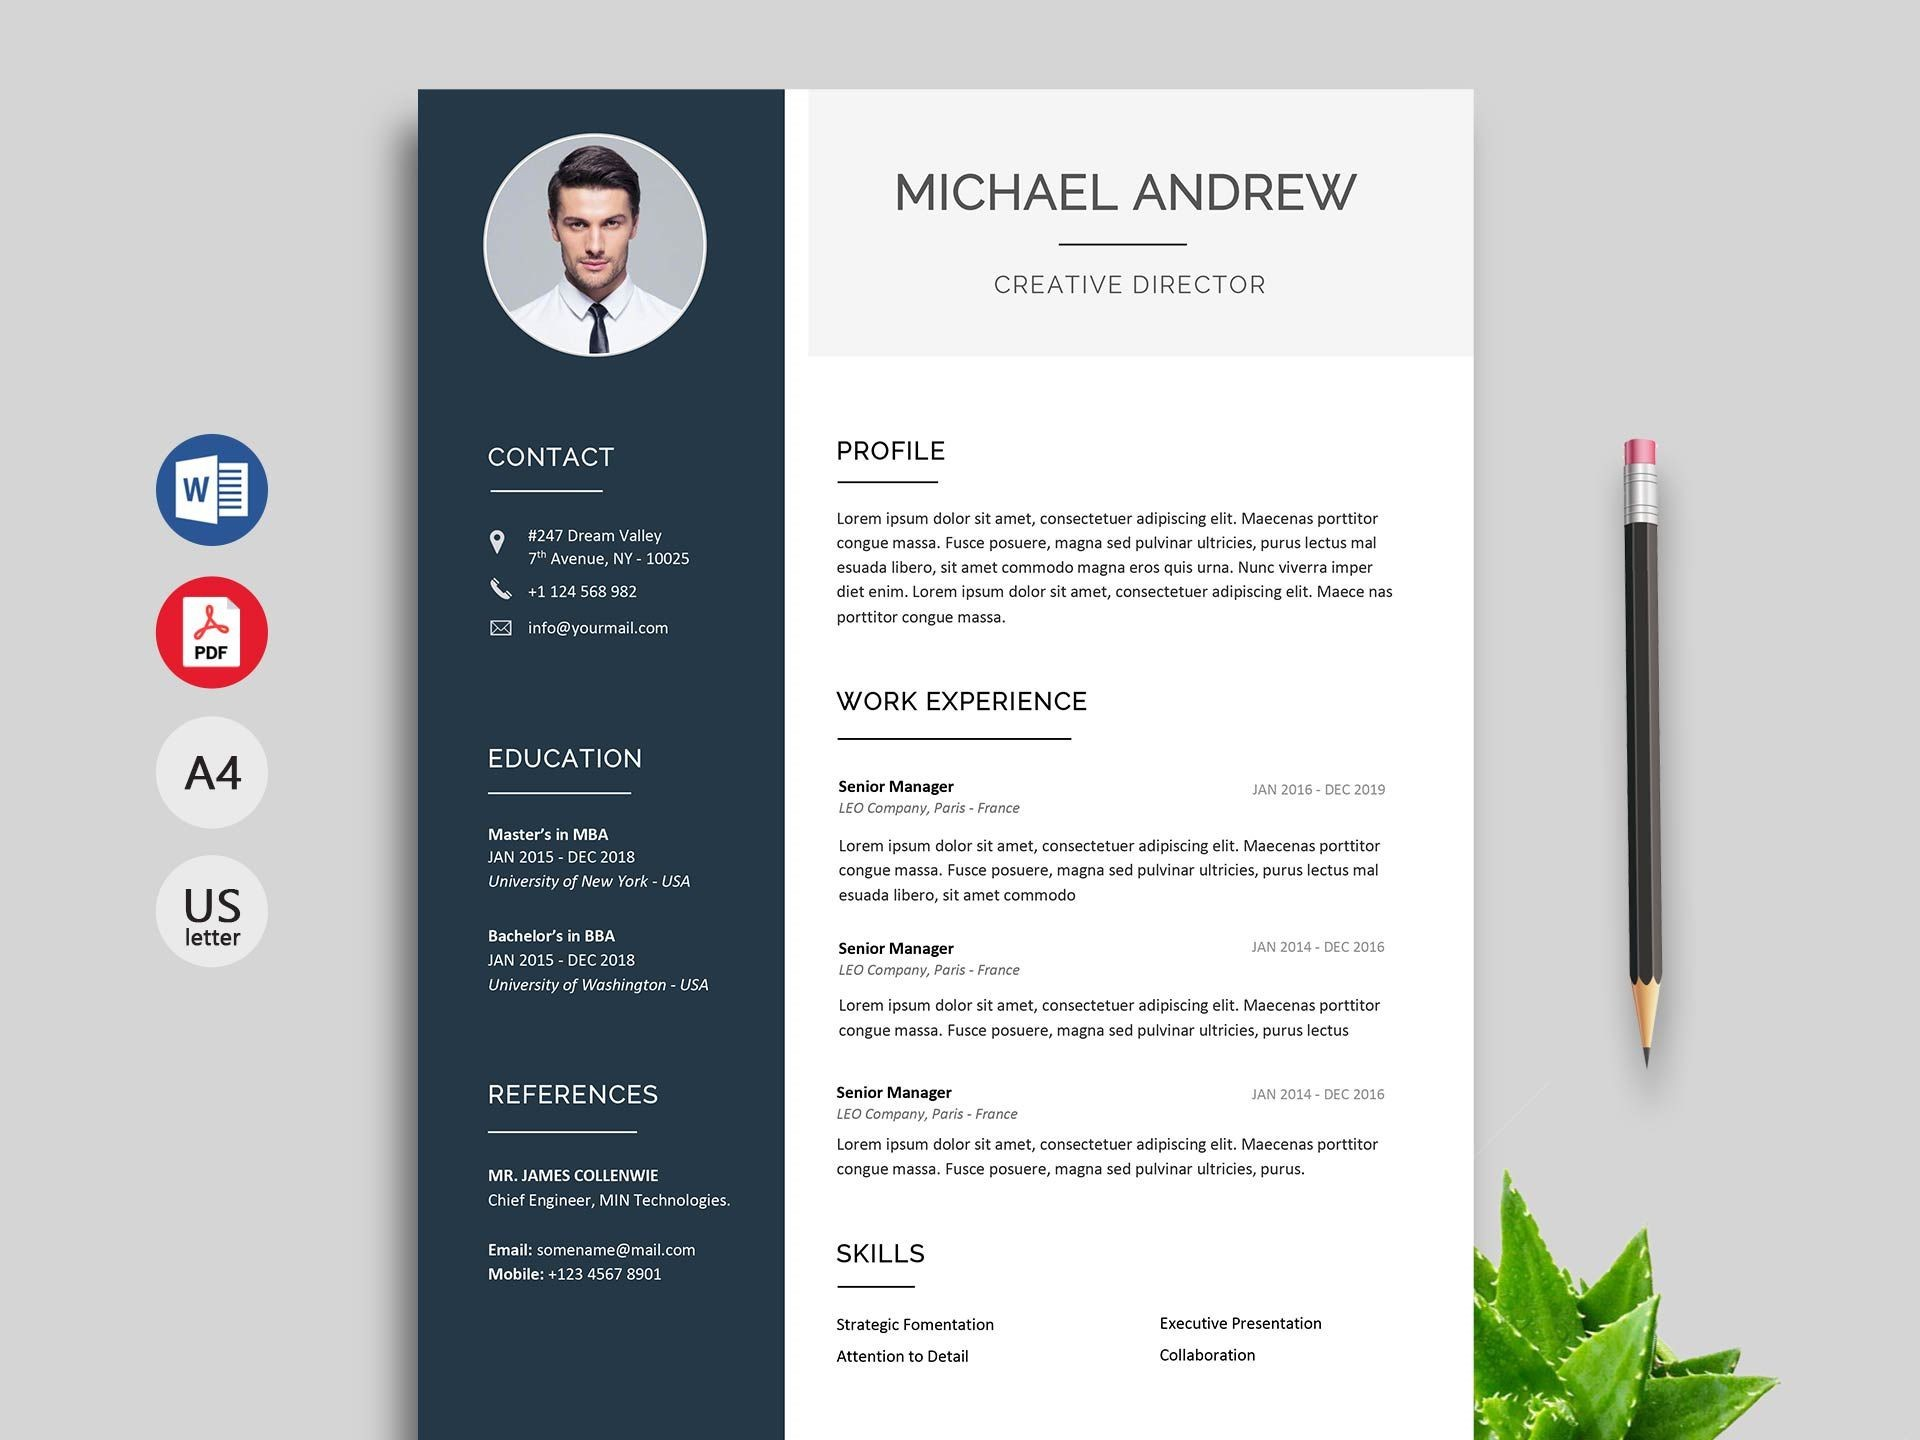 006 Fascinating Creative Resume Template M Word Free Highest Clarity 1920